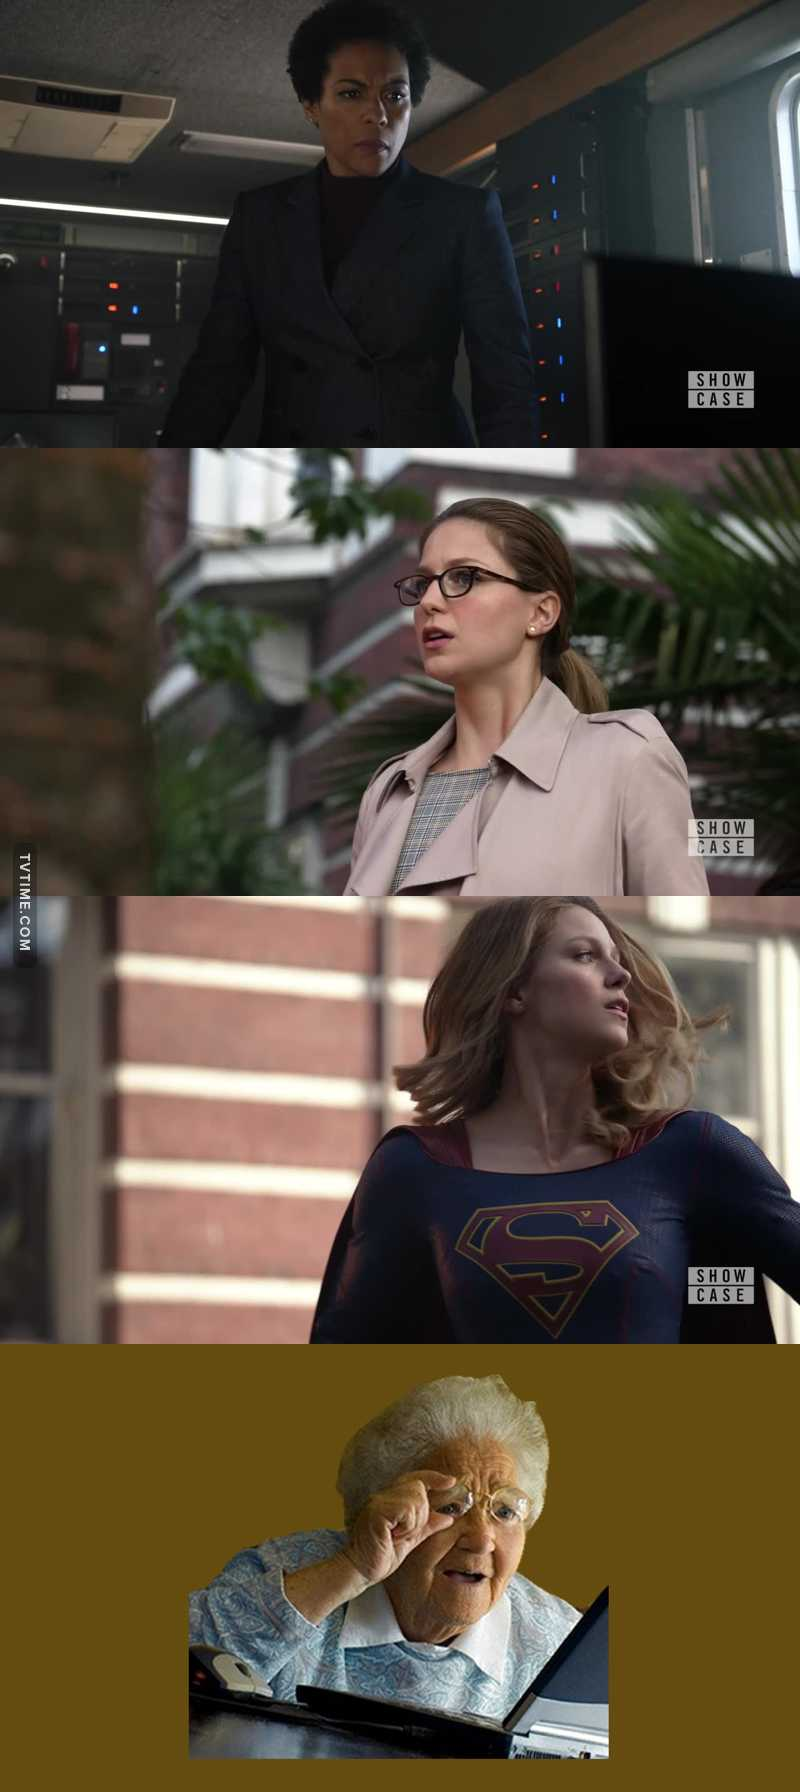 So the Colonel recognizes Supergirl/Kara's voice through the earphone but Lena doesn't.  ARE YOU FUCKING KIDDING ME?  SHE OBVIOUSLY KNOWS.